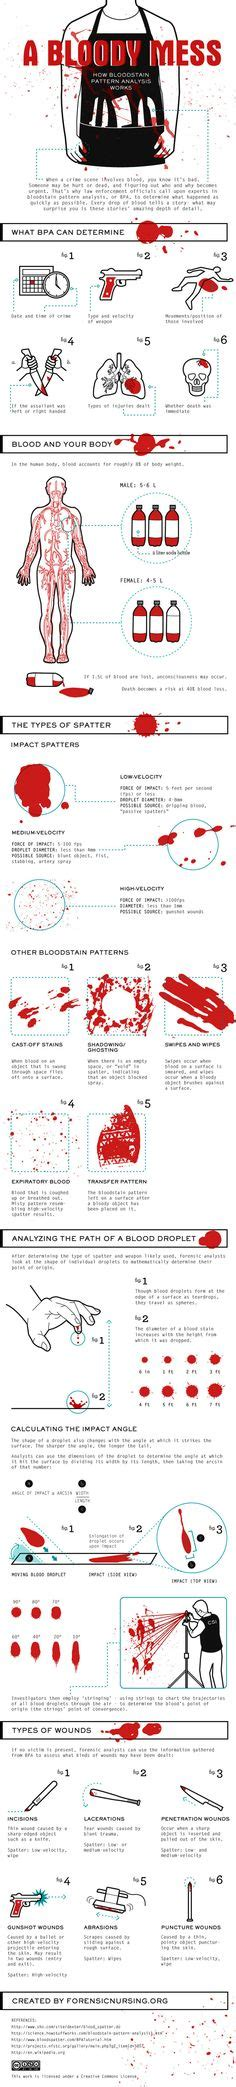 bloodstain pattern analysis how stuff works infographic what are the hardest languages to learn